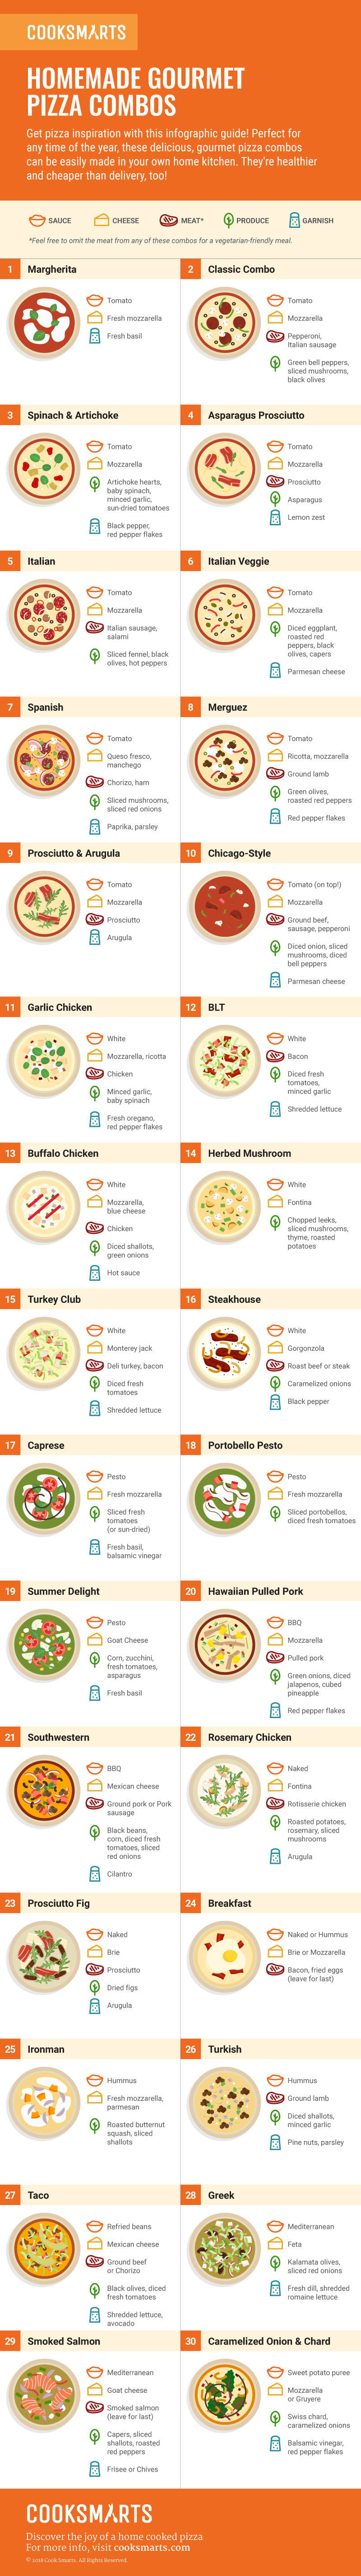 Homemade Gourmet Pizza Combos [Infographic] | Cook Smarts